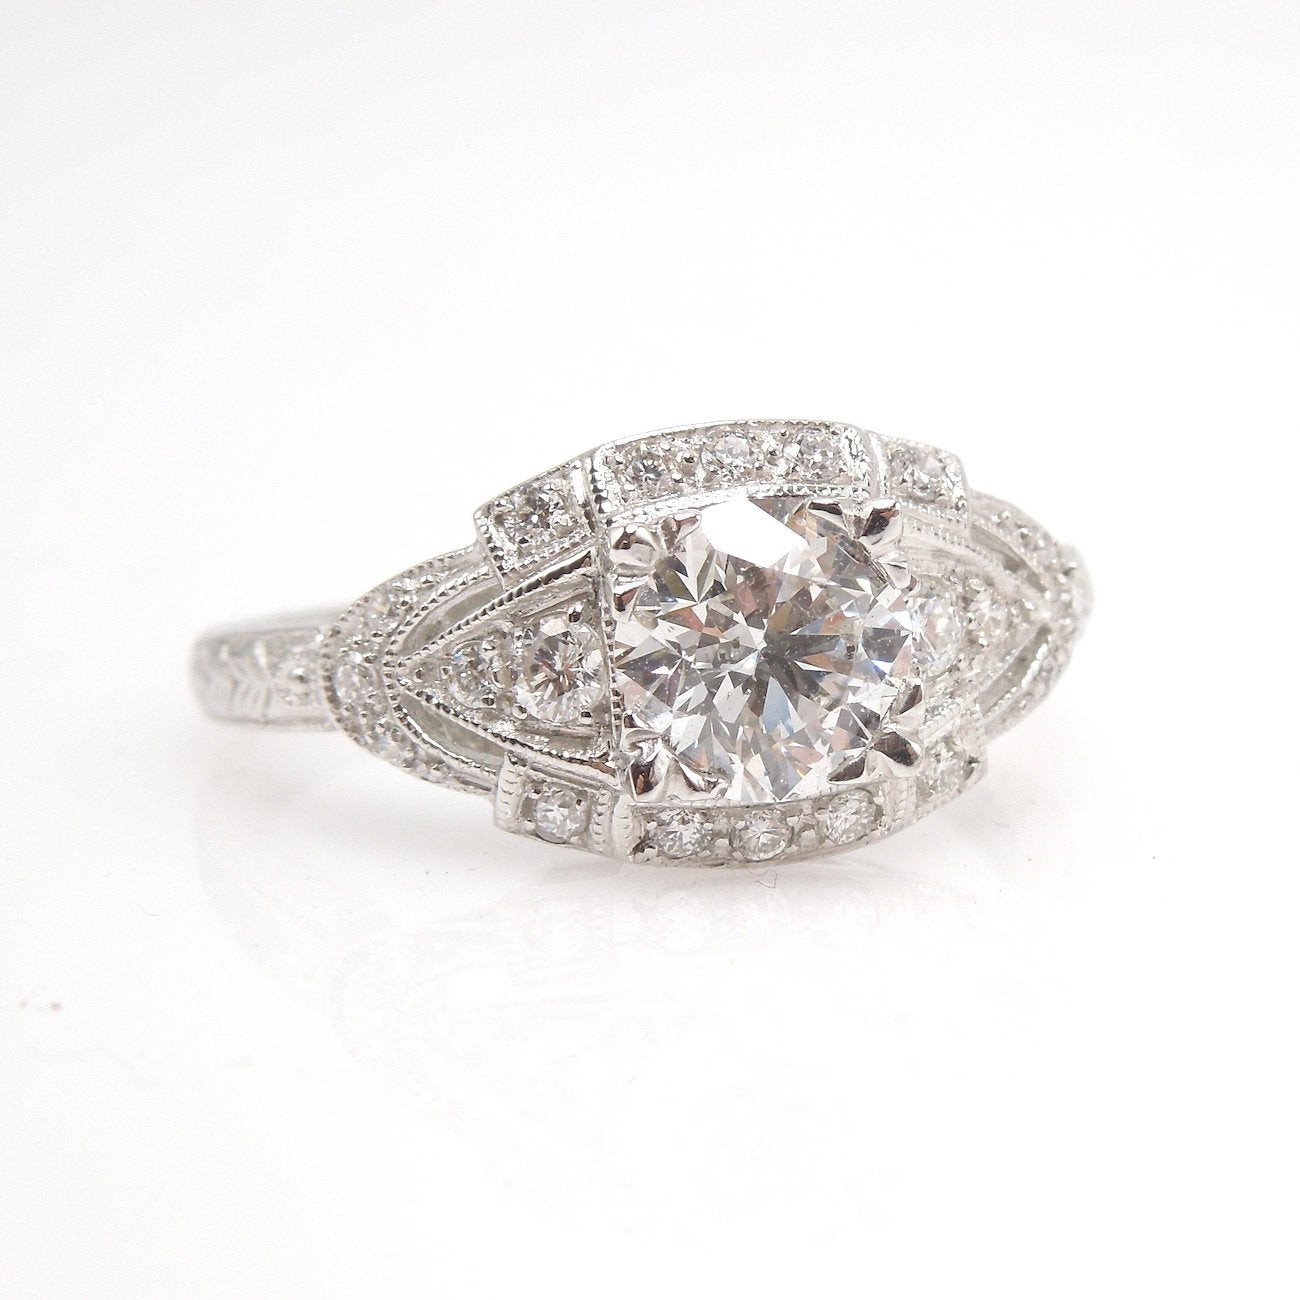 The Eye Ring - 0.90ct Diamond - Art Deco Style Engagement Ring in Platinum